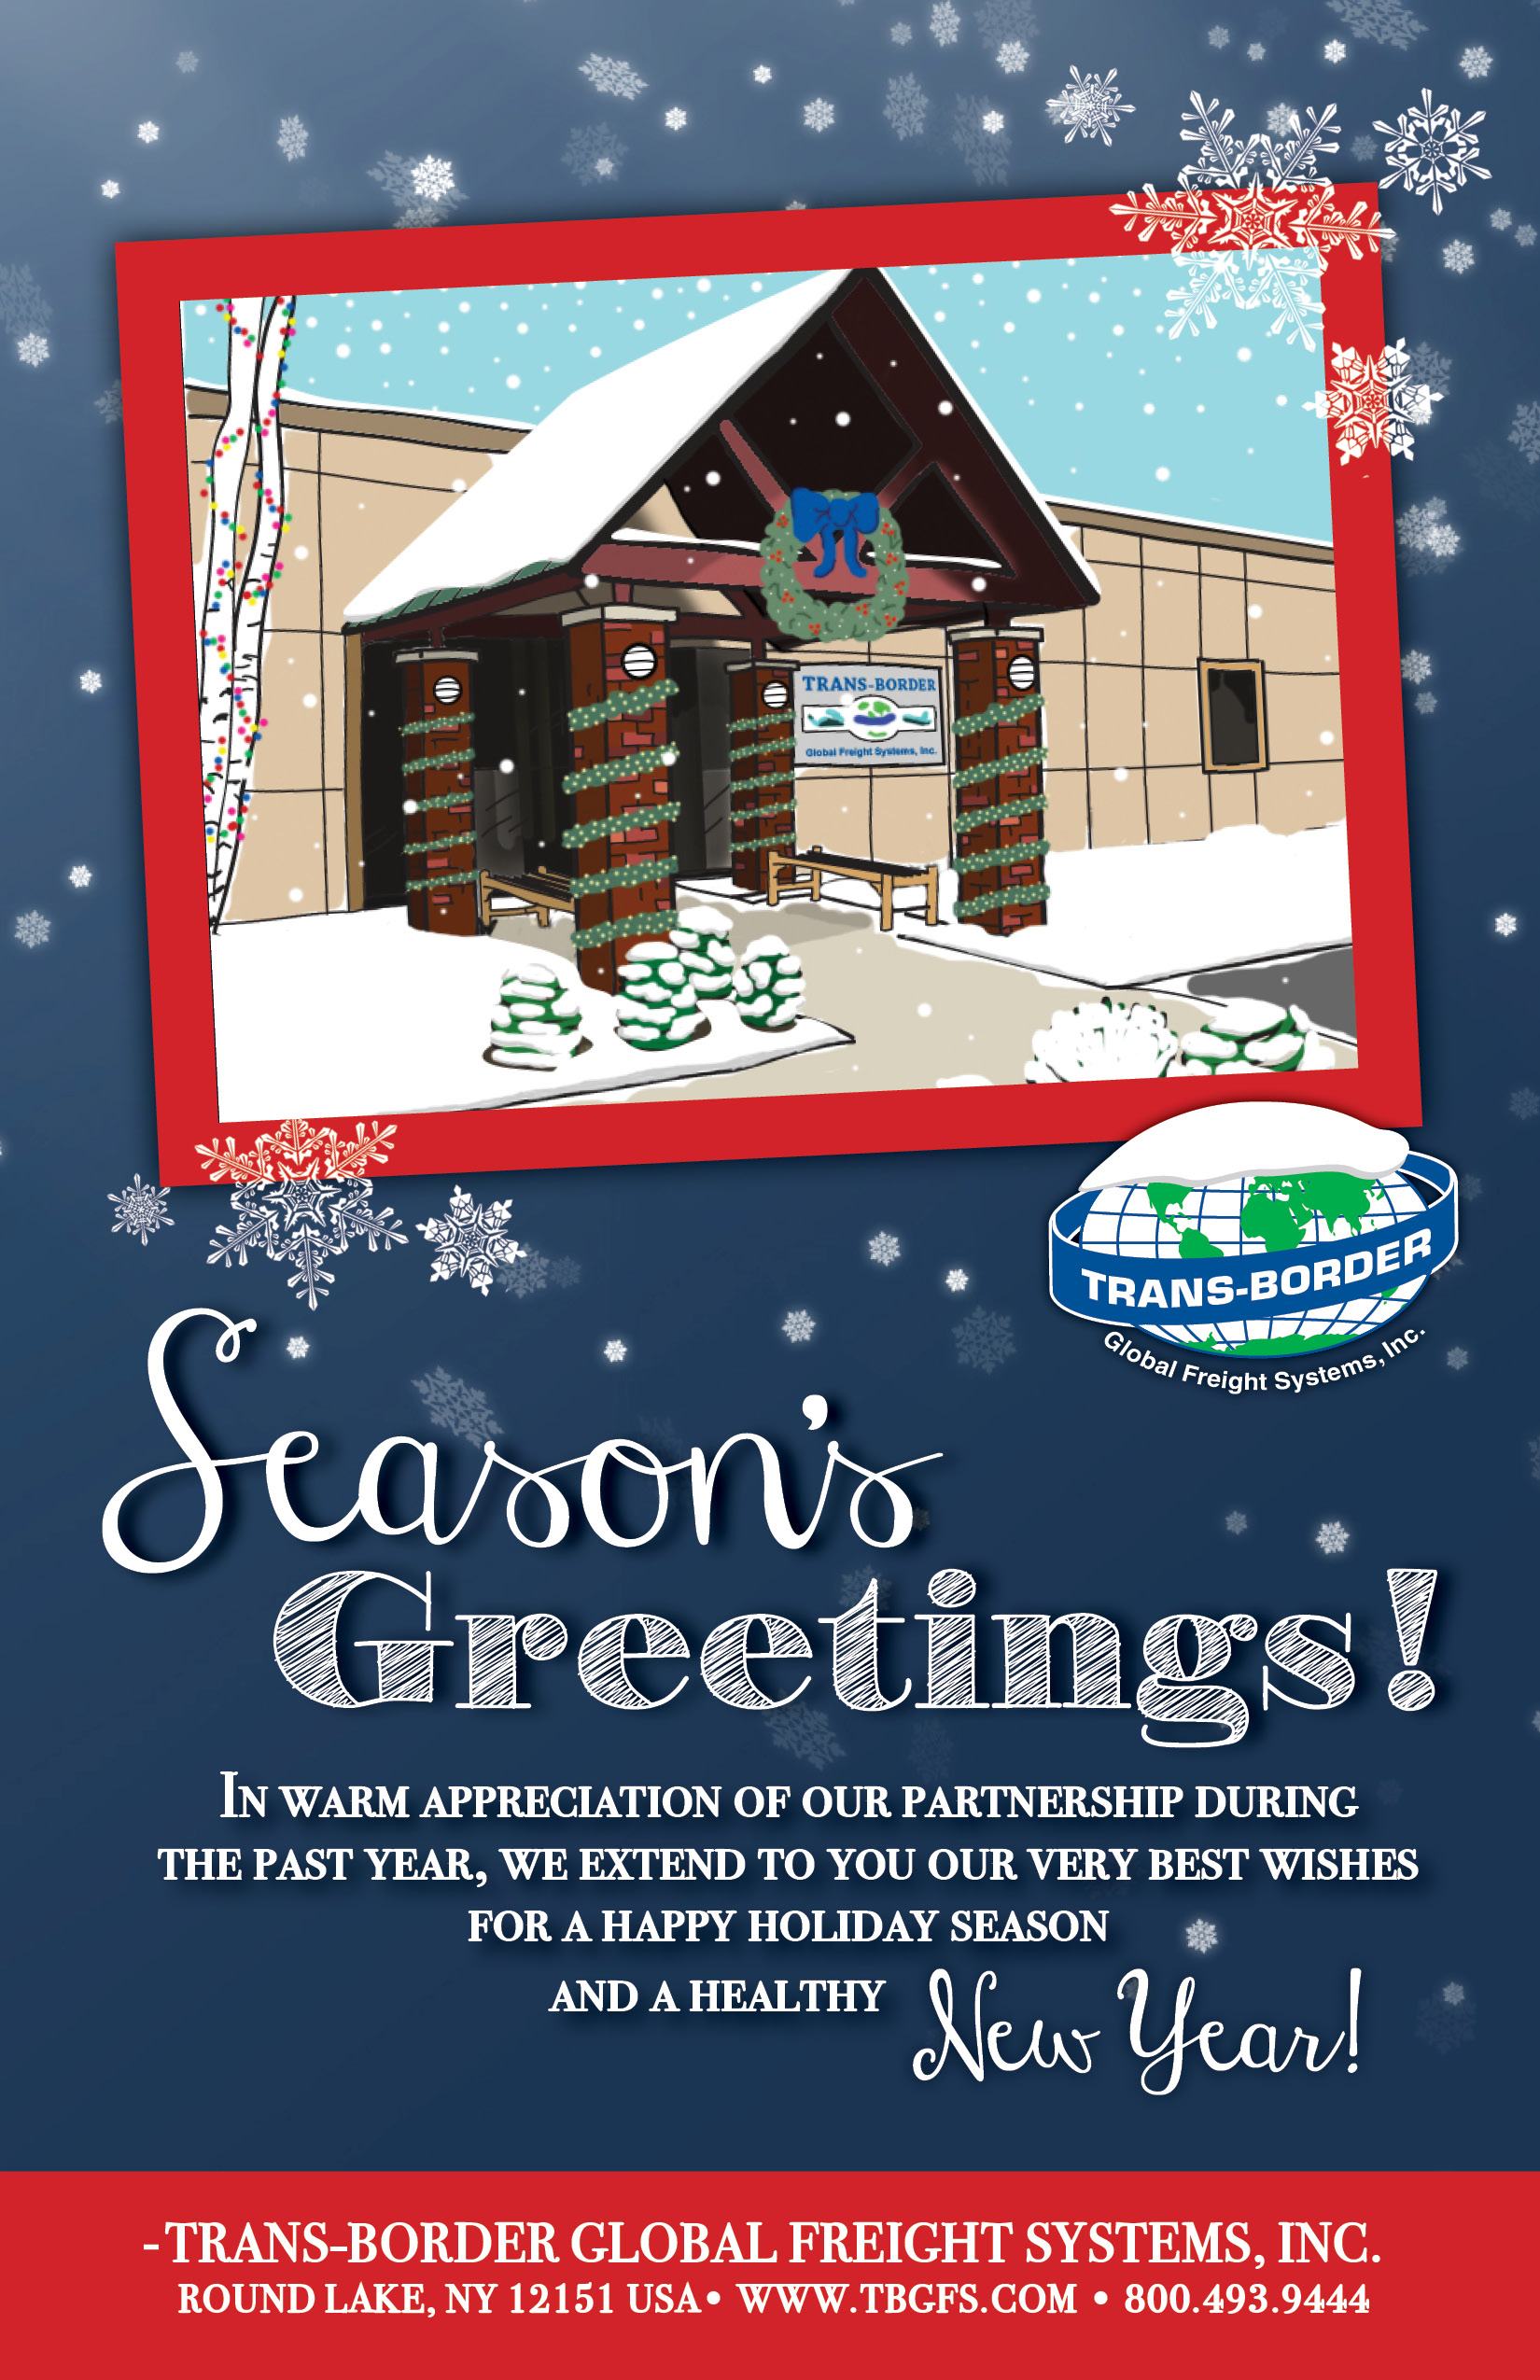 Seasons Greetings Trans Border Global Freight Systems Inc